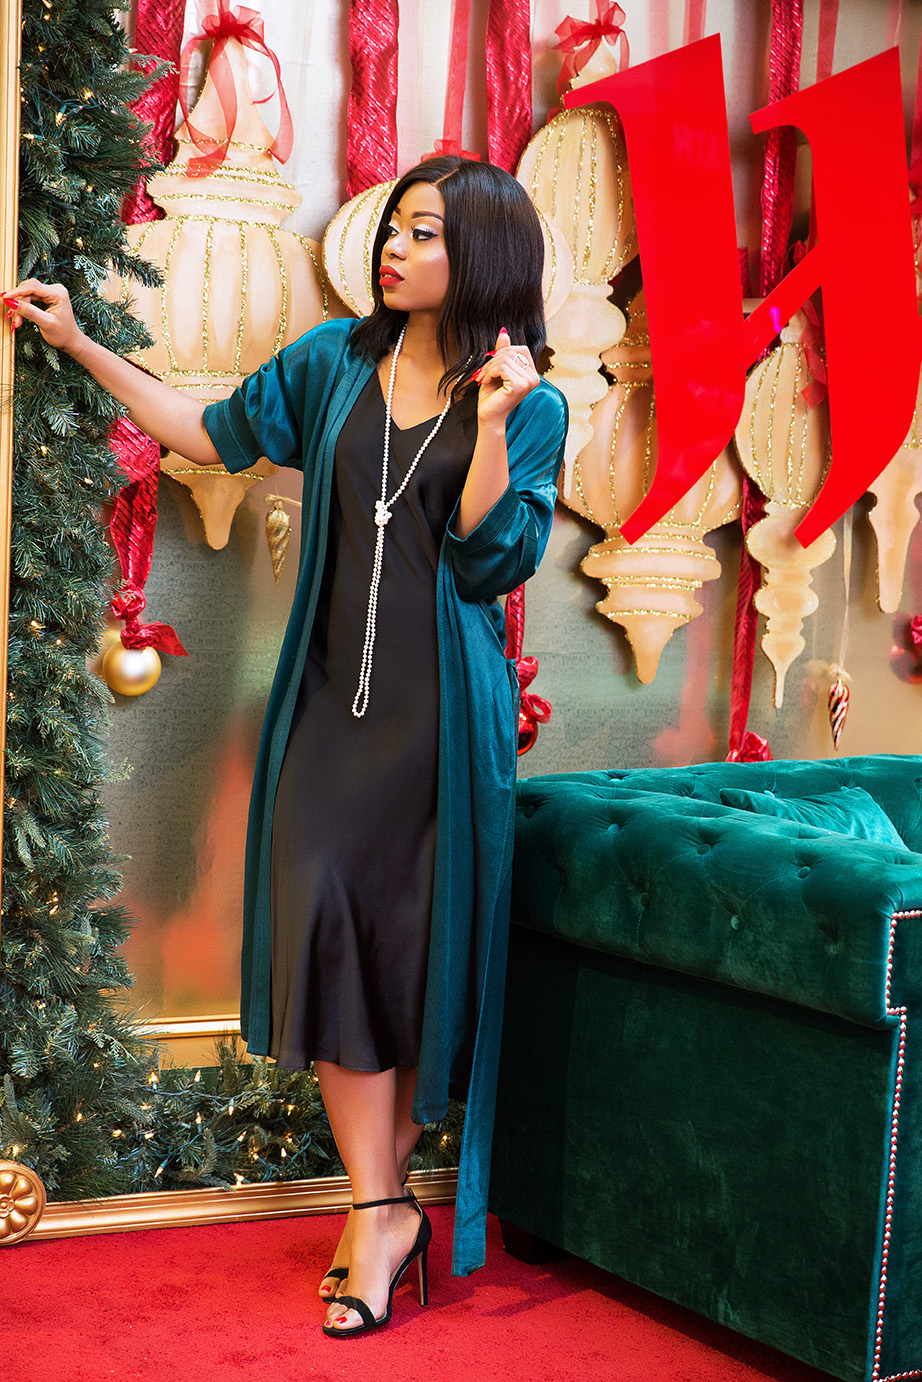 Shane Co jewelry, holiday style, slip dress, www.jadore-fashion.com